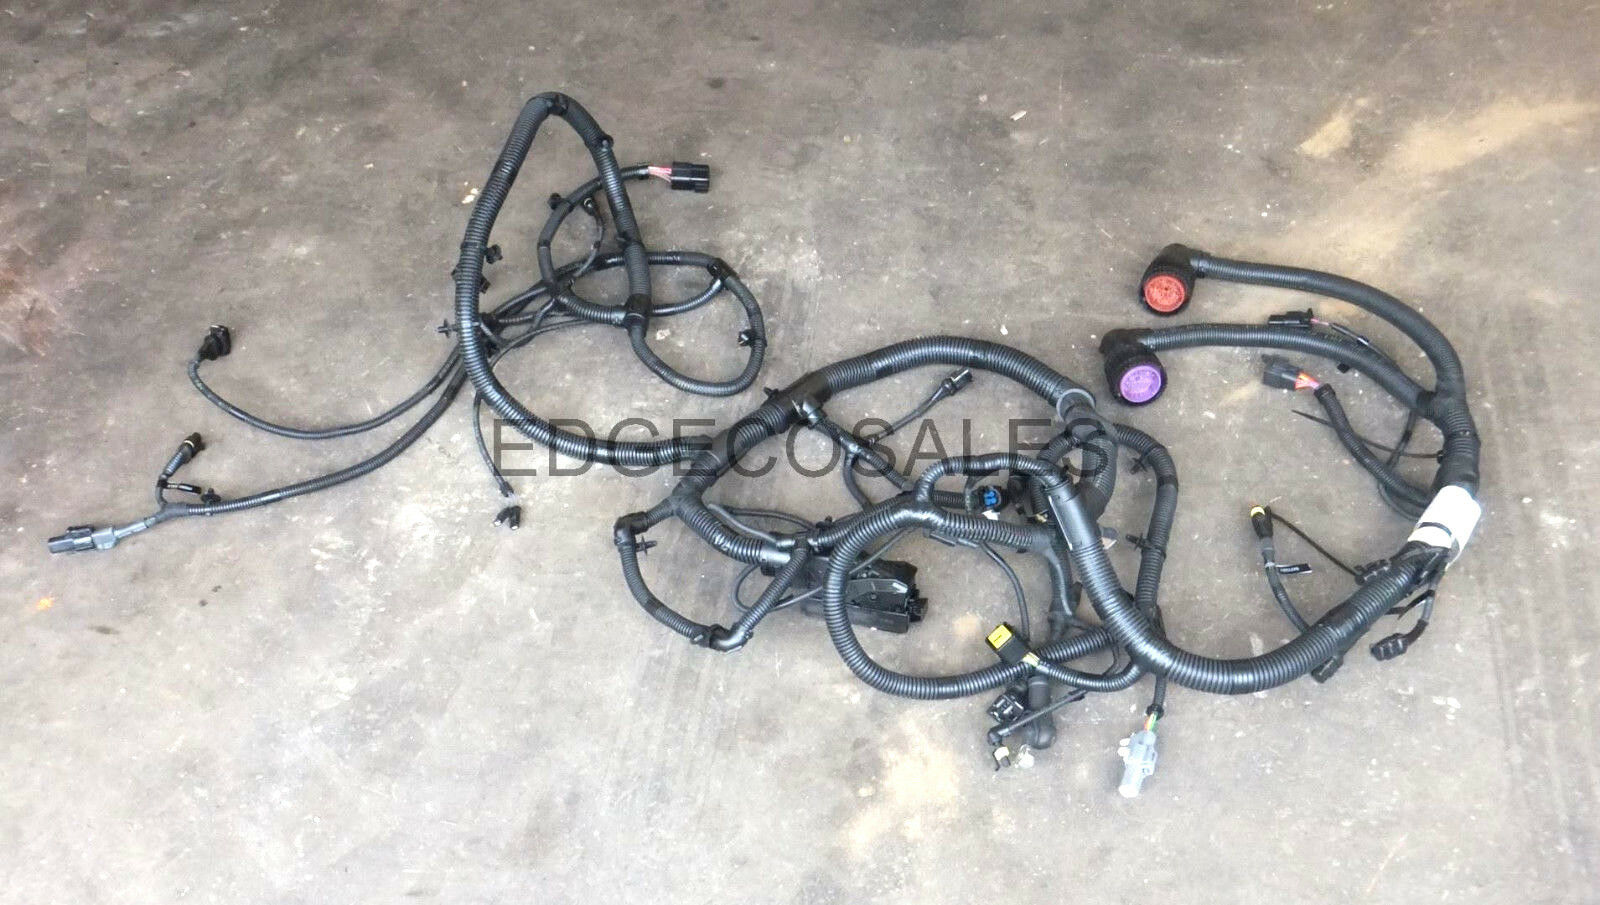 Heavy Equipment Parts Accs New Holland Wiring Harness T6 Series Tractor Engine 47467233